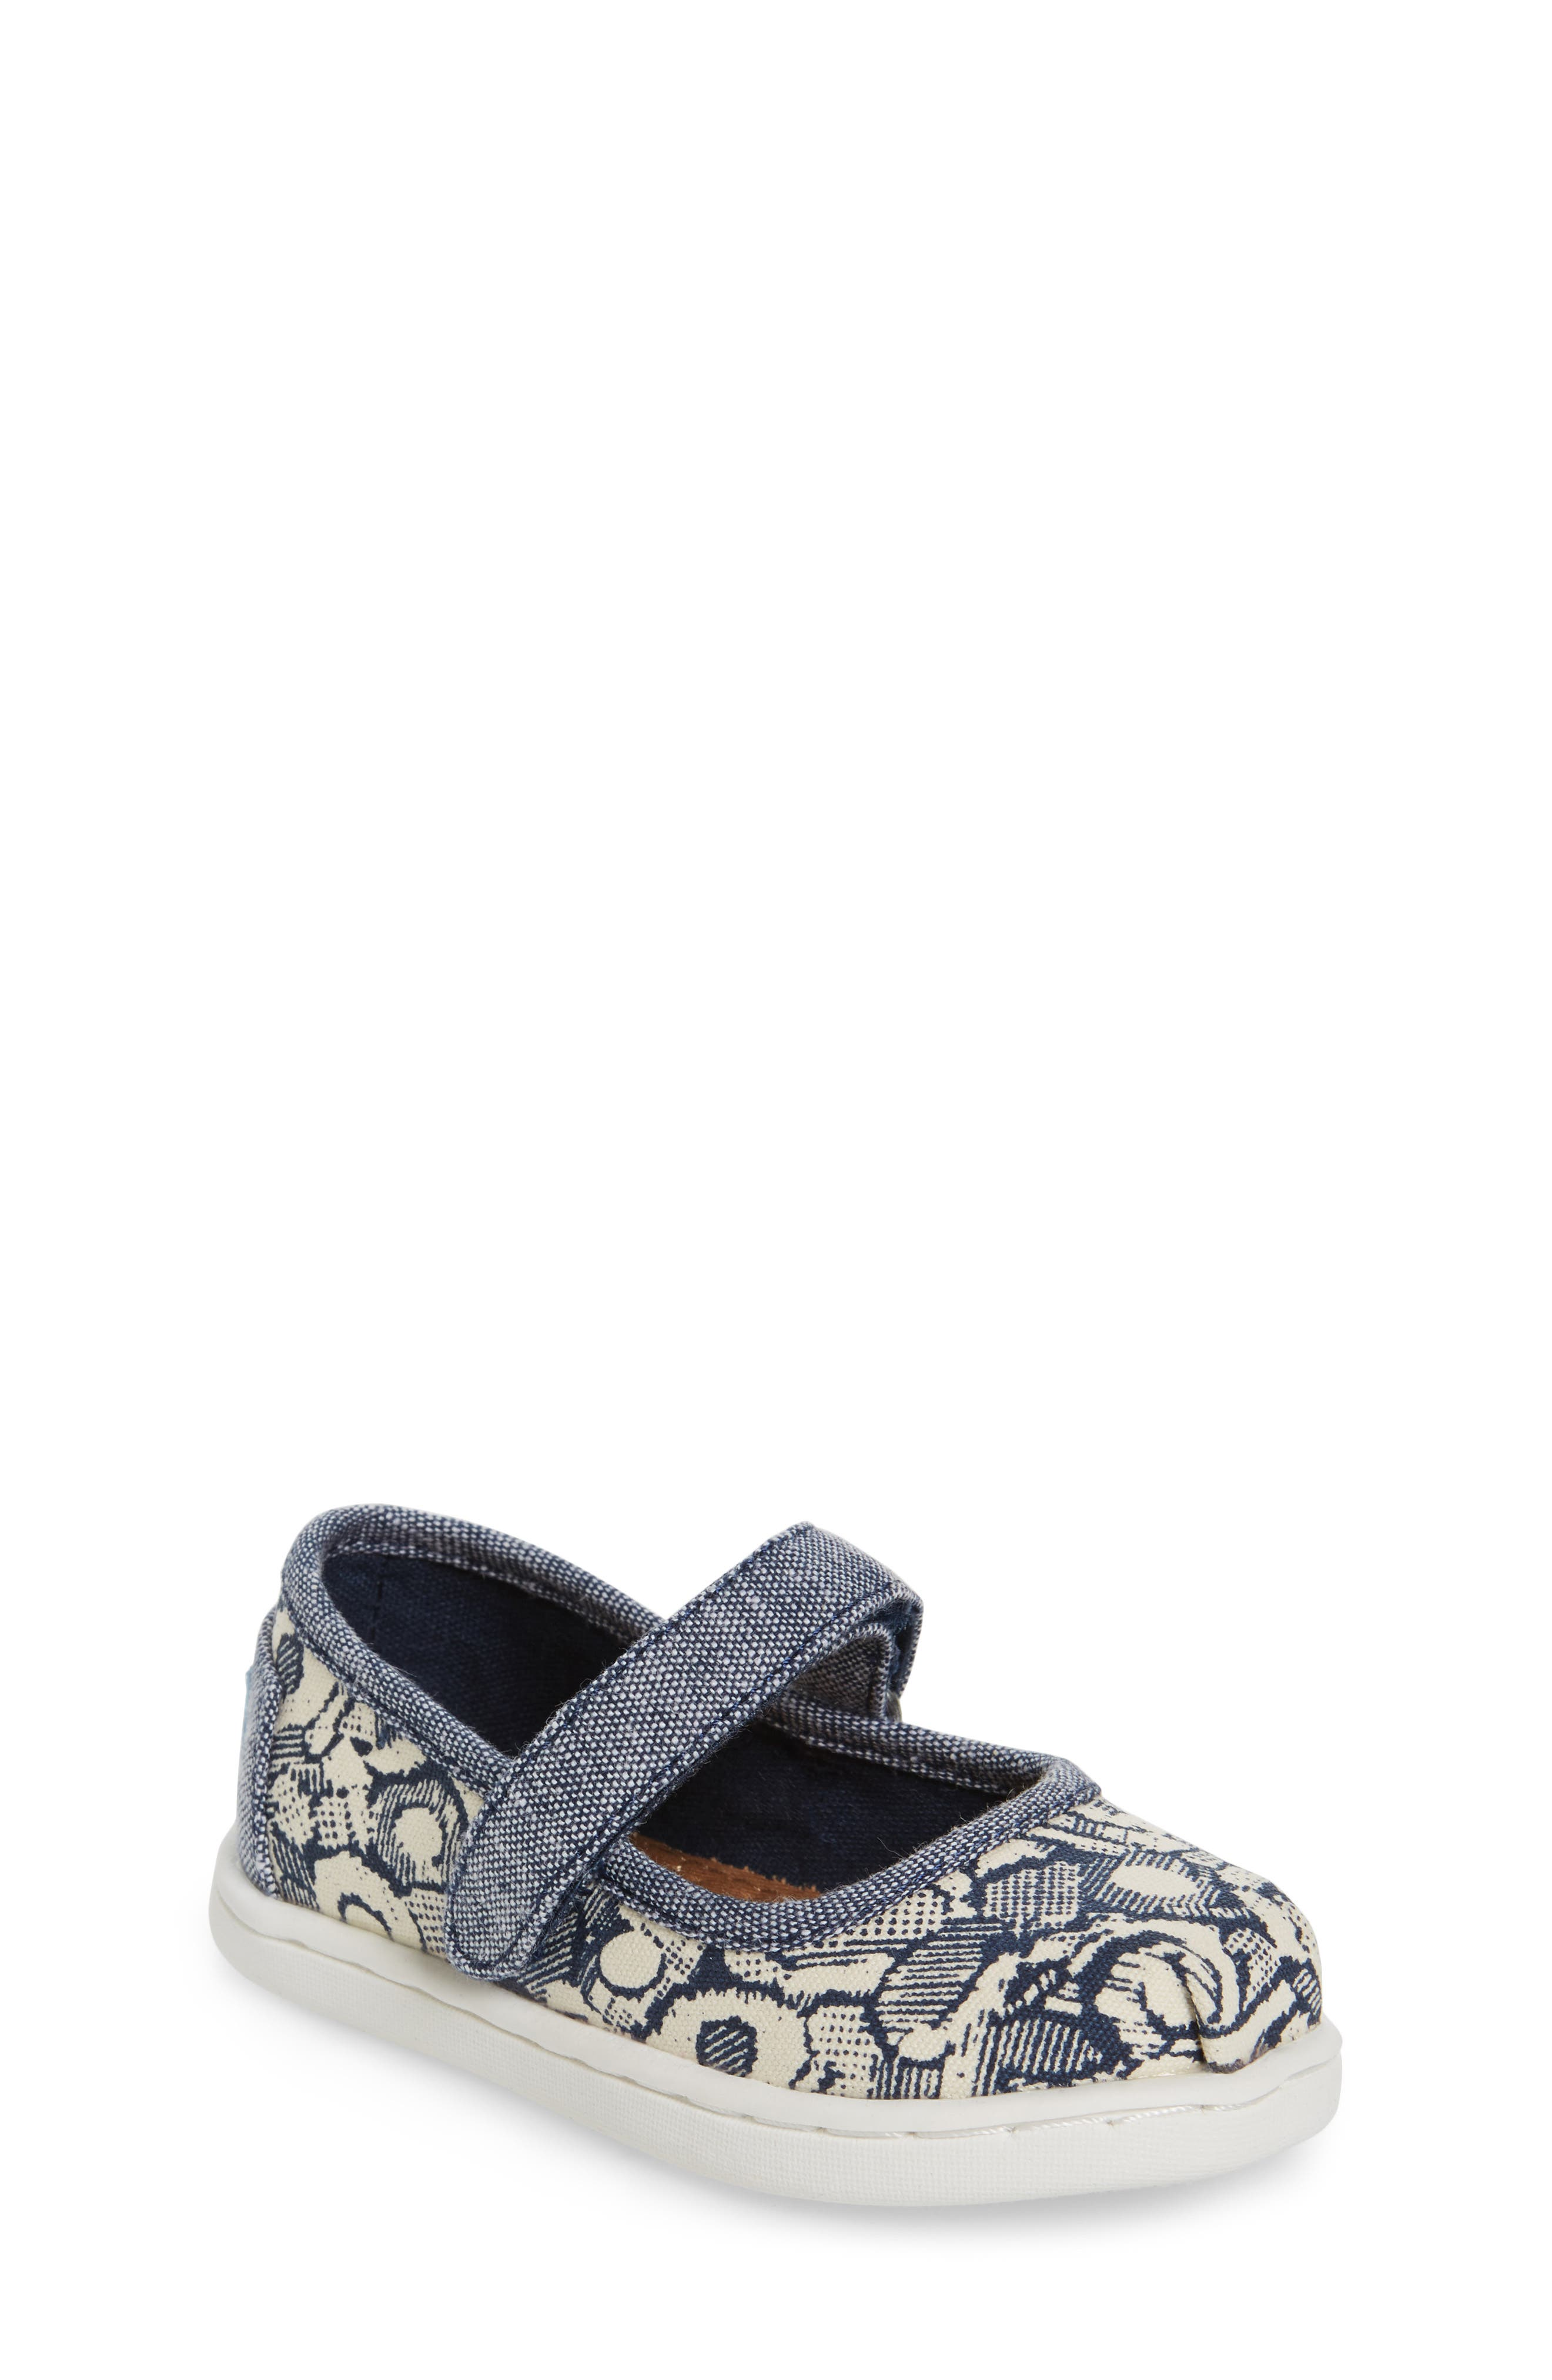 Floral Camo Mary Jane,                         Main,                         color, 410